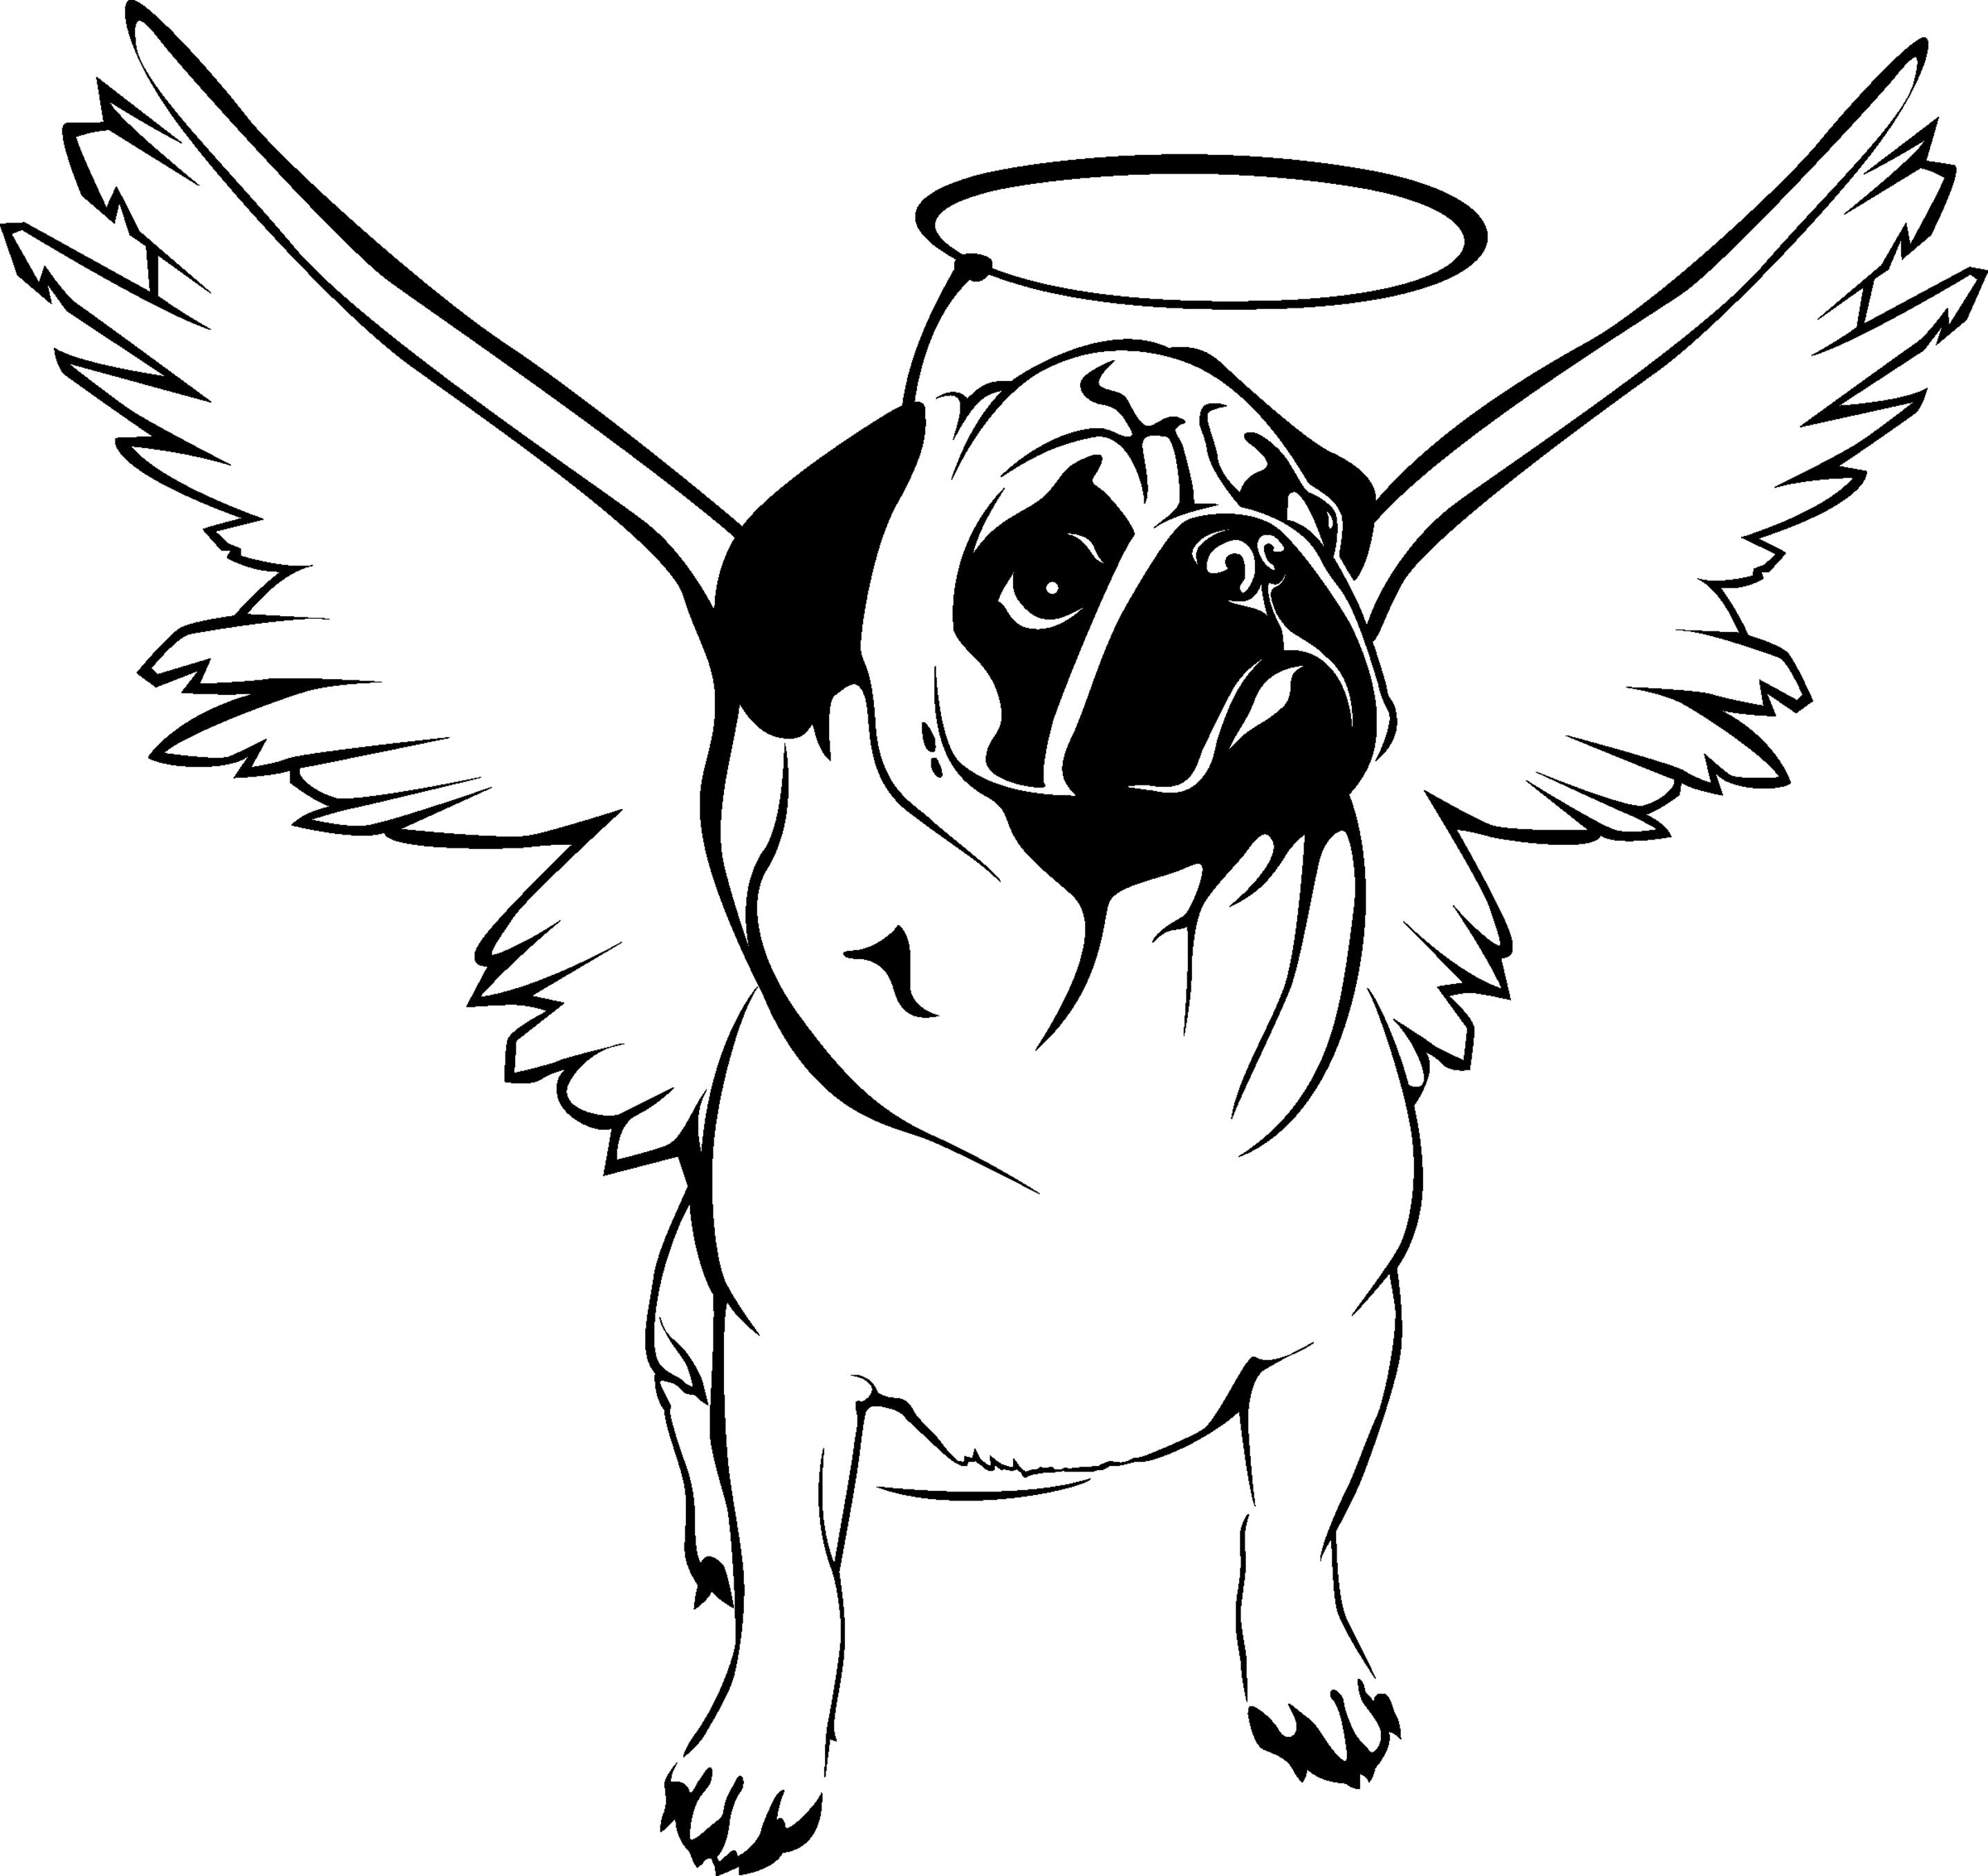 pug animal coloring pages. Angel  Search Pugs Photos Cat Research Pictures Searching Angels Pin by Caroline GKuan on Puggy Pinterest angel Cricut ideas